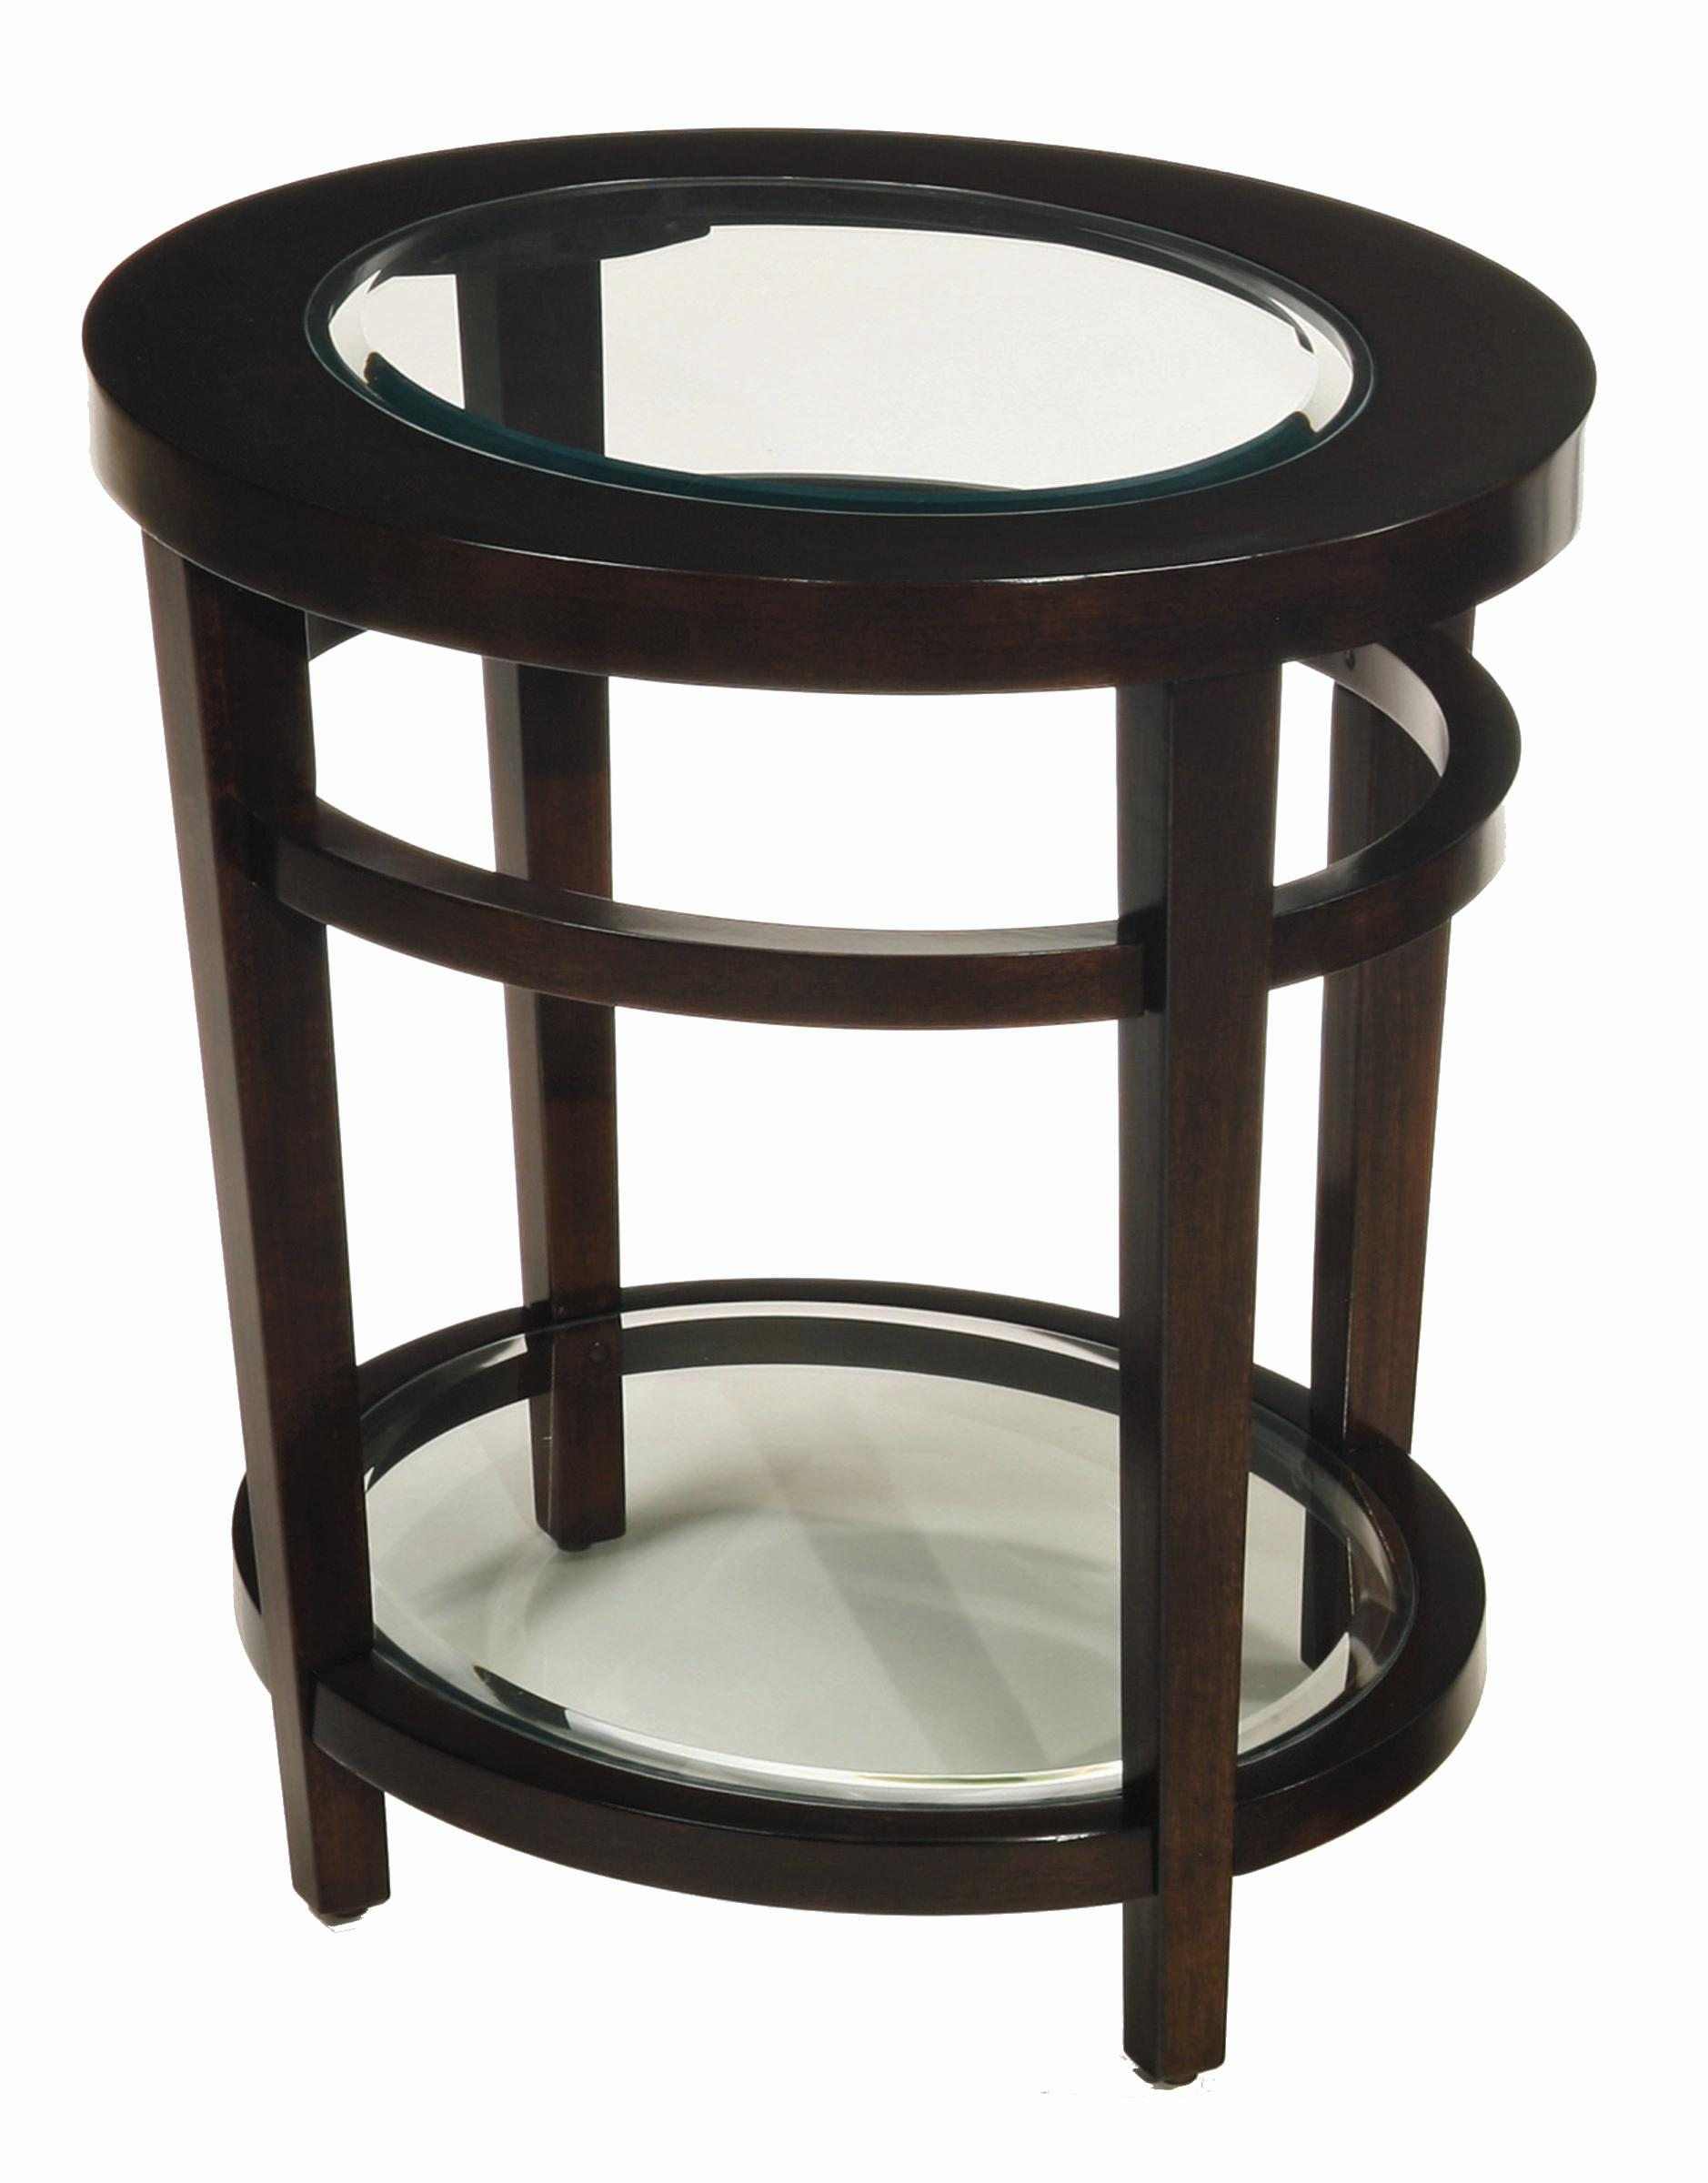 Morris Home Atwell Atwell Ave End Table - Item Number: T2081536-00